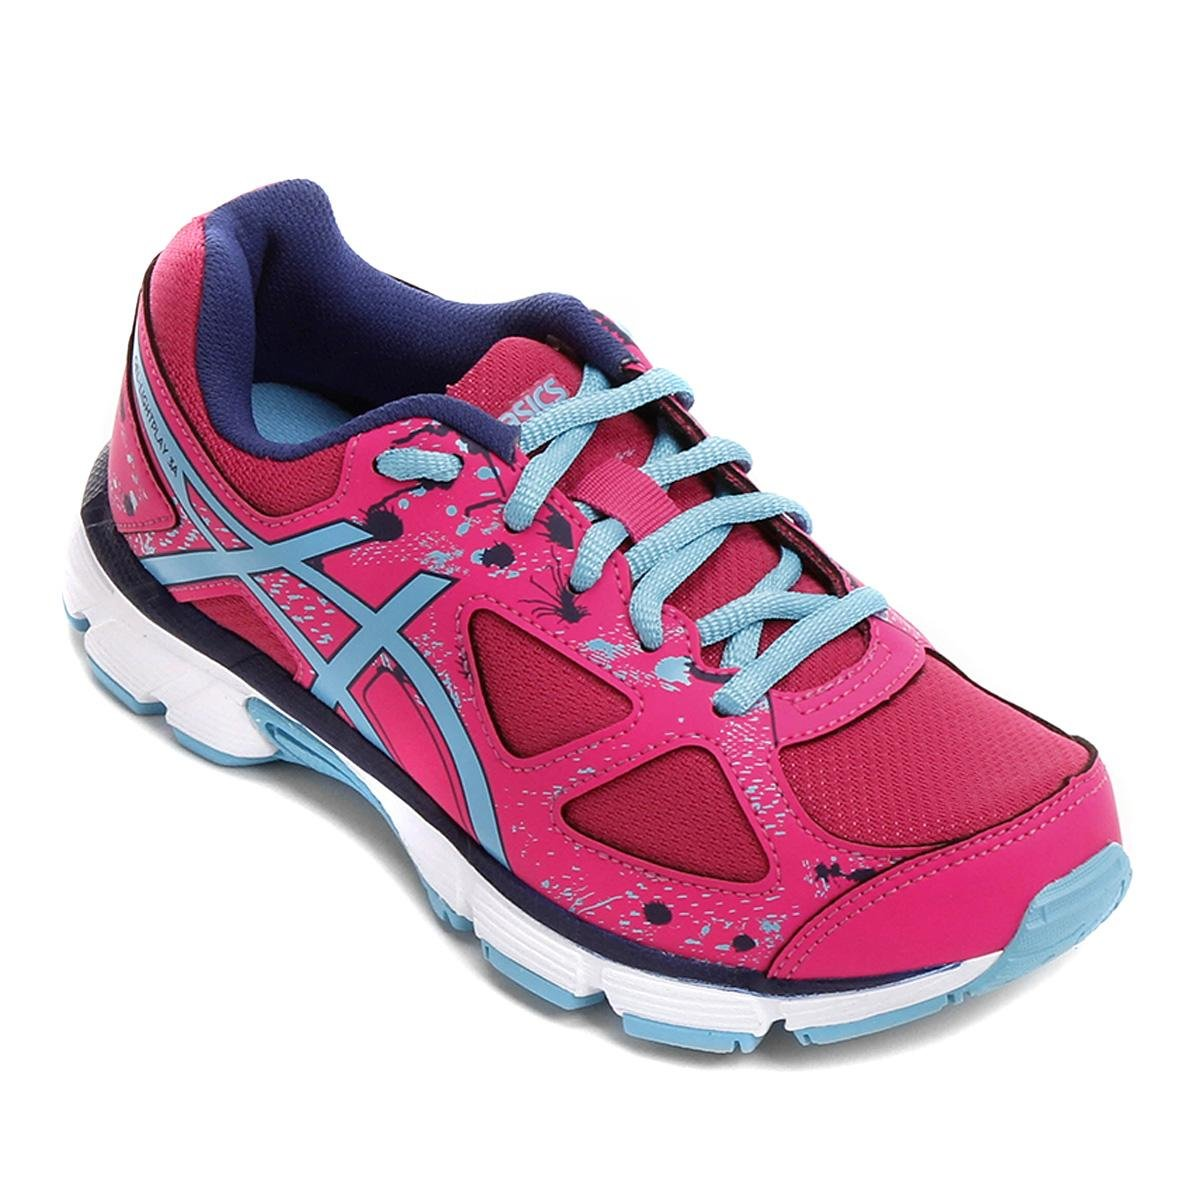 26813c04332 38%OFF Tênis Infantil Asics Gel-Light Play 3 A Gs Masculino